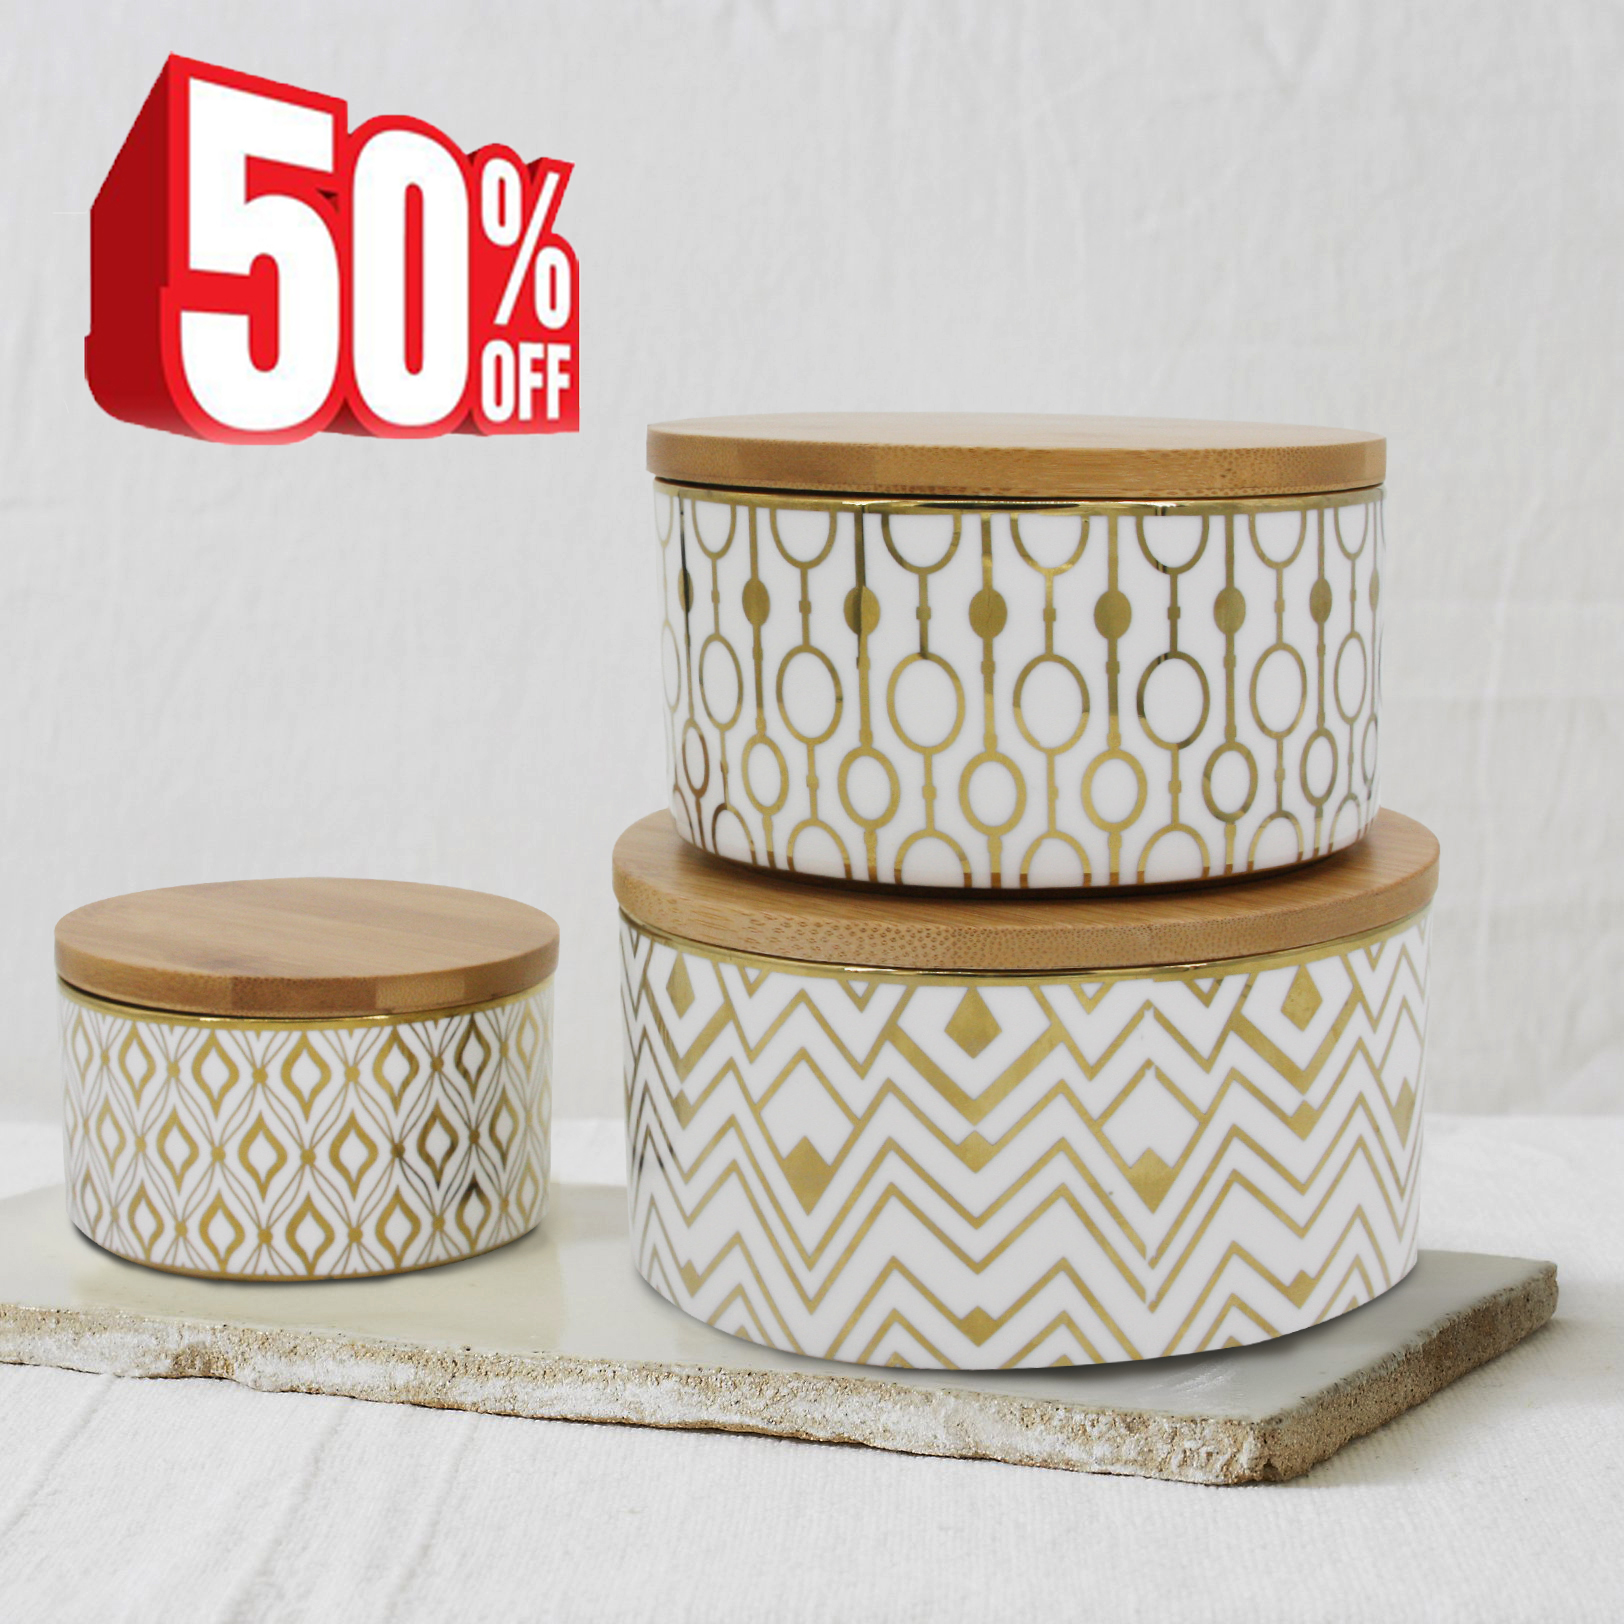 Canister Sets Kitchen Decorative Container Jars Airtight Bamboo Lids Gold  Geometric For Tea, Coffee,